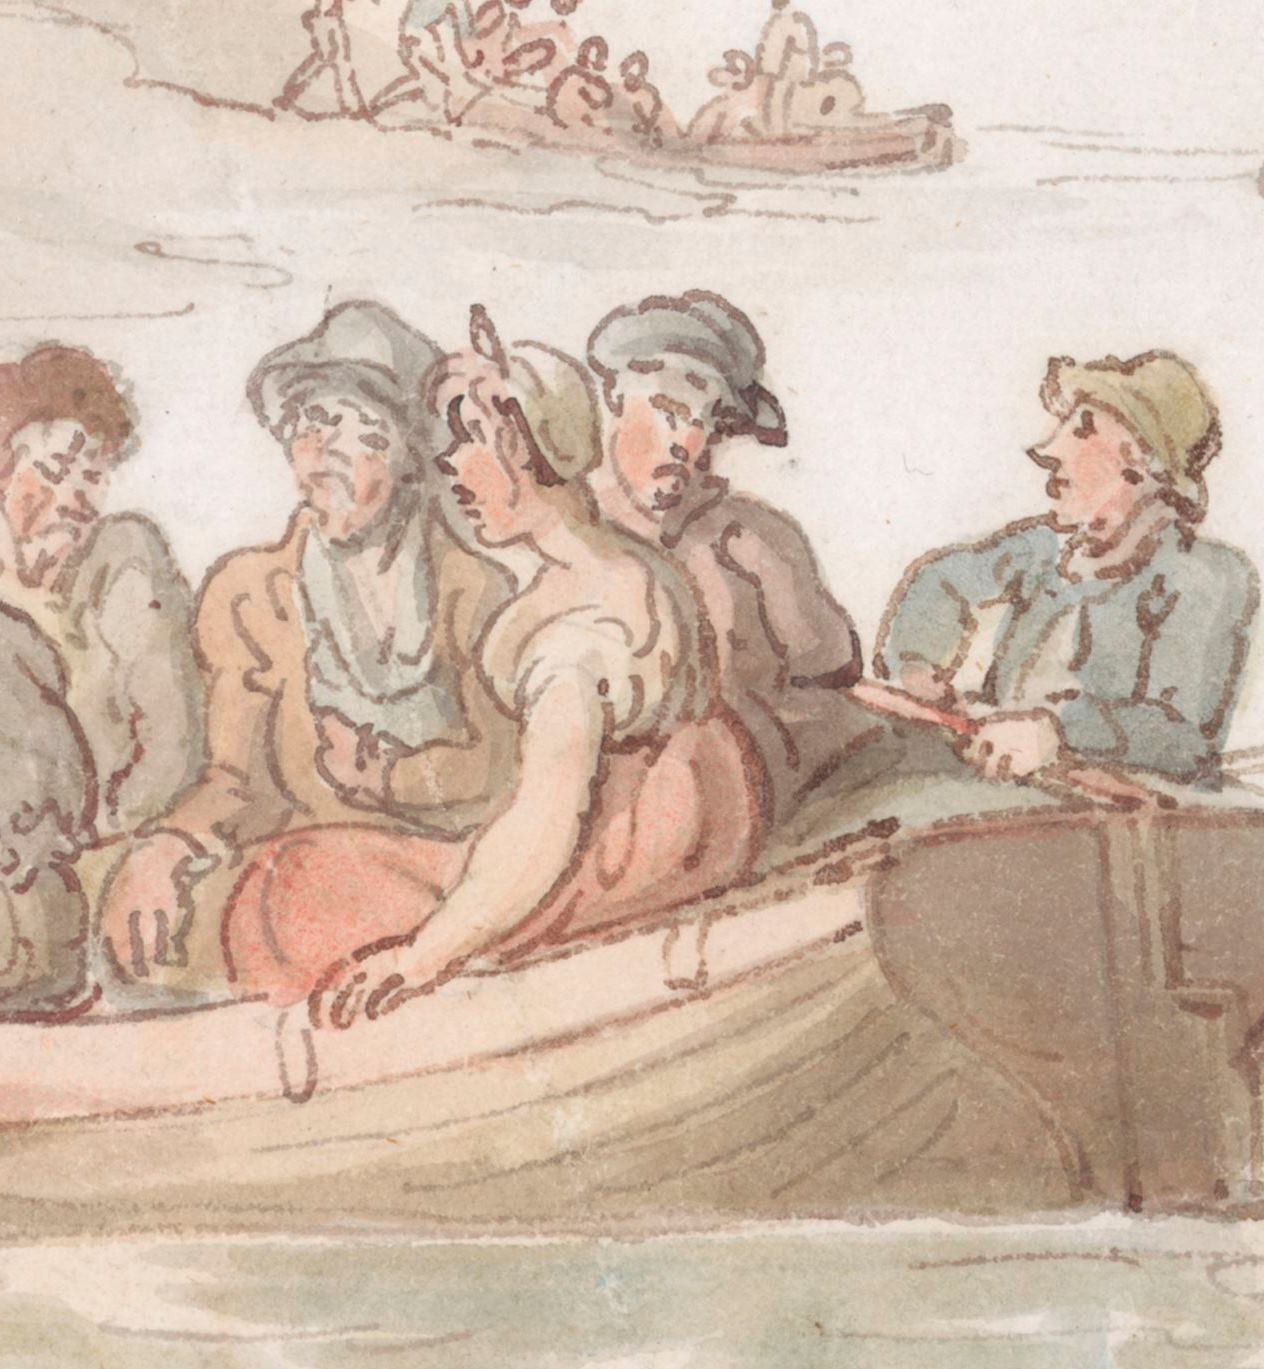 Illustration of convicts boarding small boats.